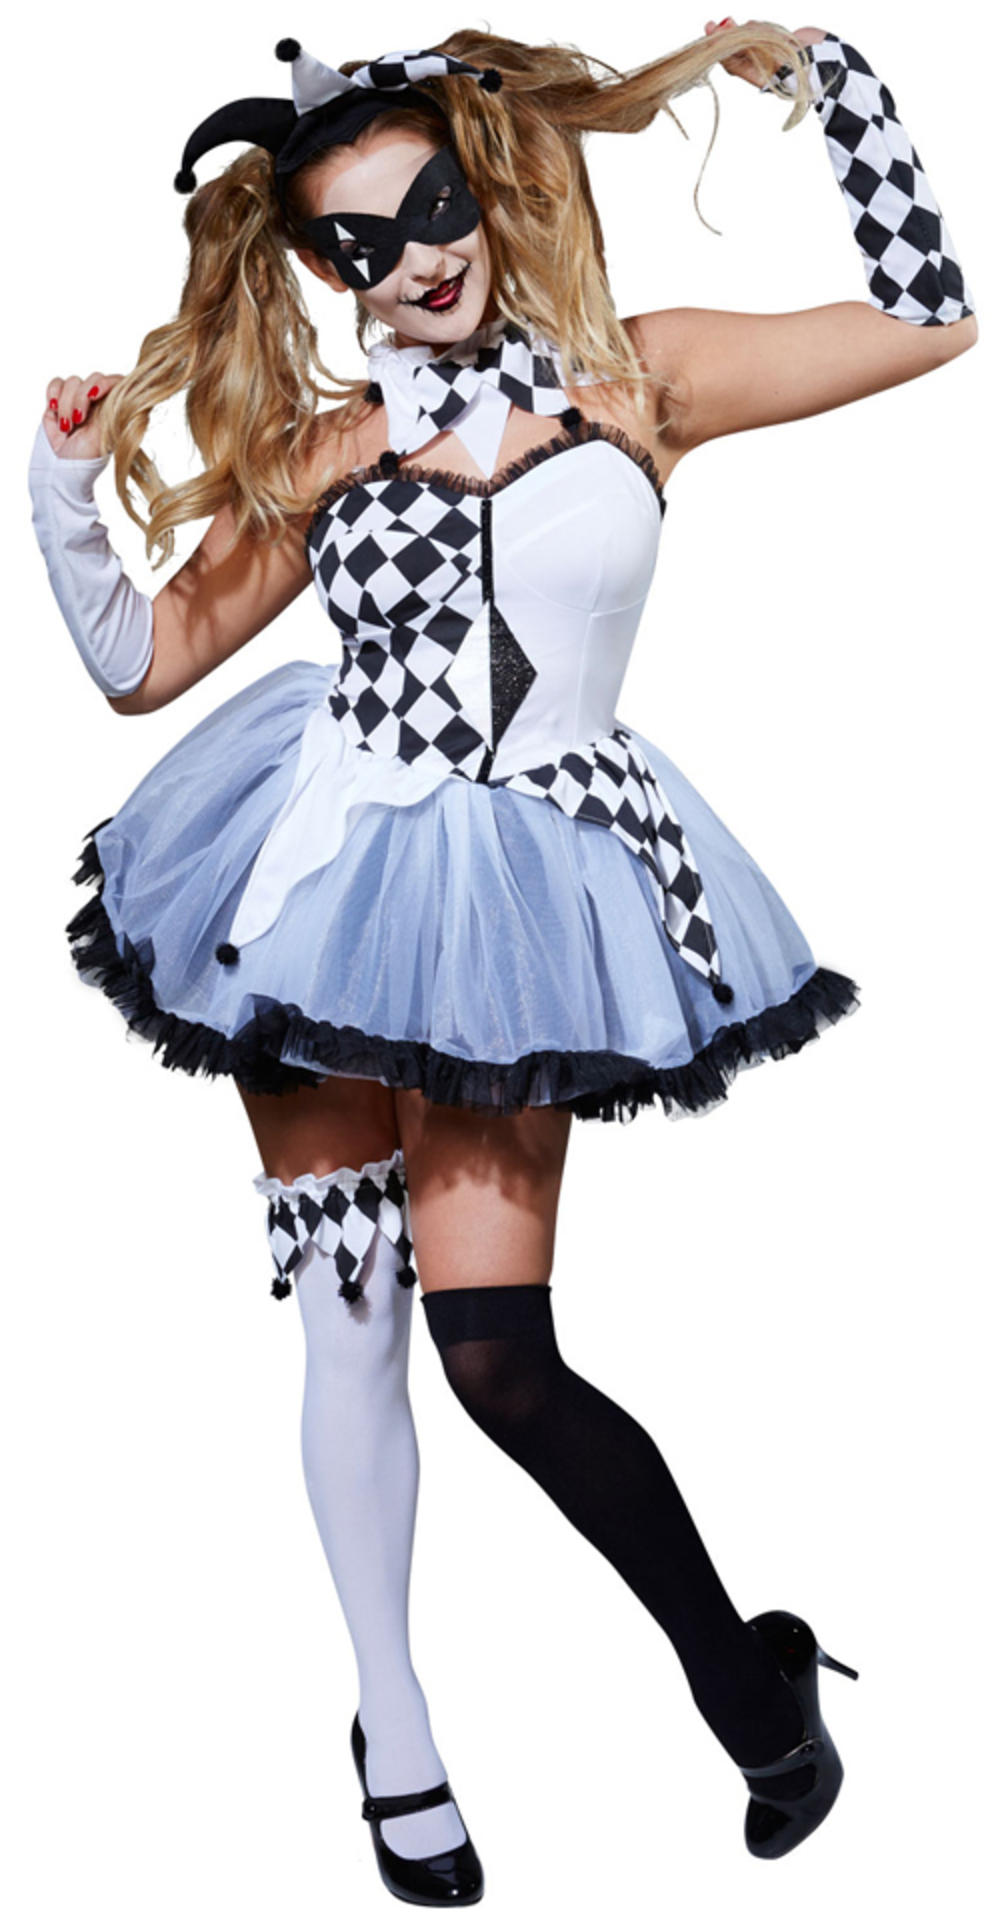 Harlequin Jester Ladies Halloween Fancy Dress Womens Adult Circus Costume Outfit